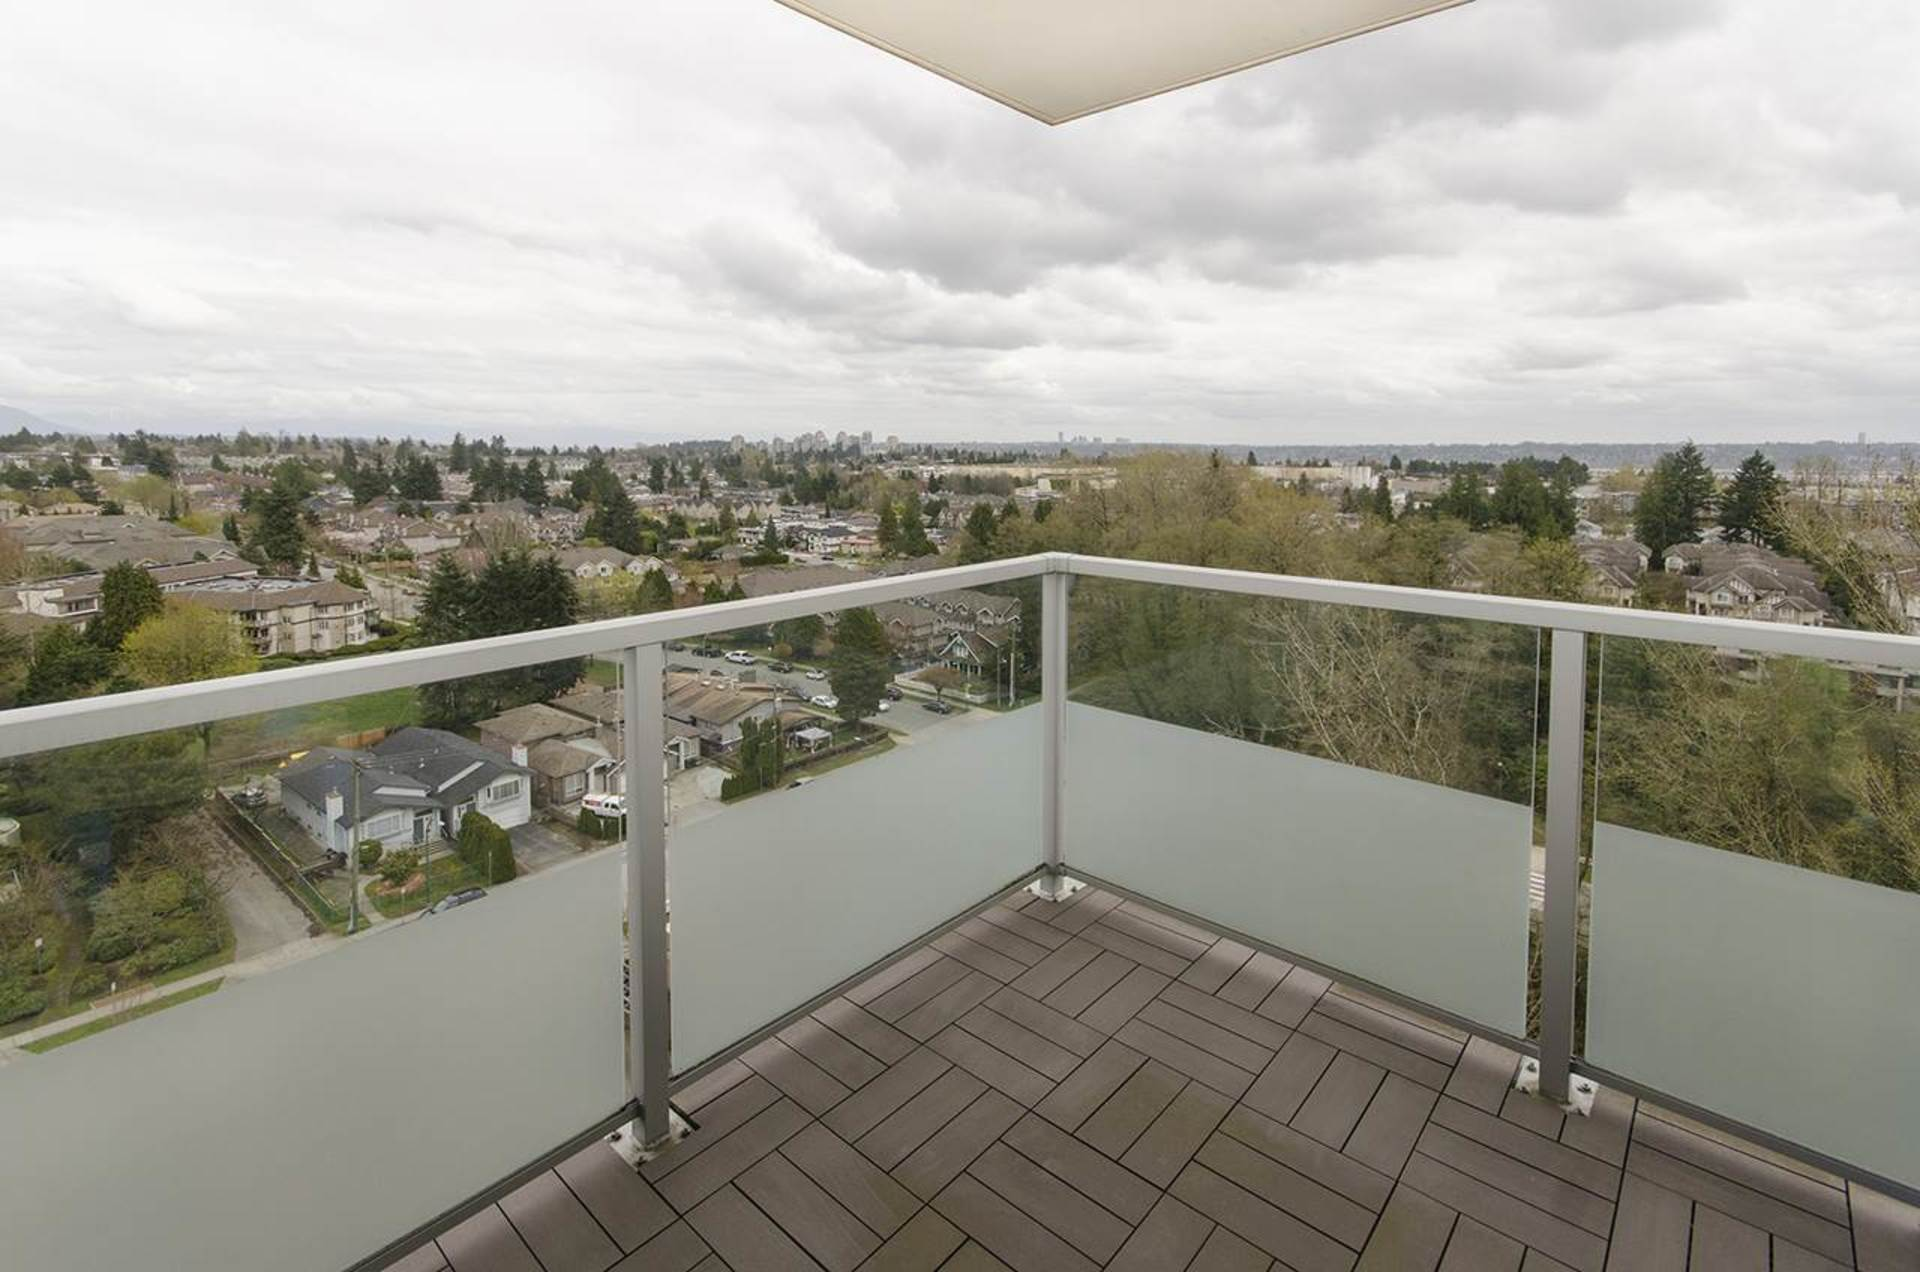 7090-edmonds-street-edmonds-be-burnaby-east-14 at 1807 - 7090 Edmonds Street, Edmonds BE, Burnaby East